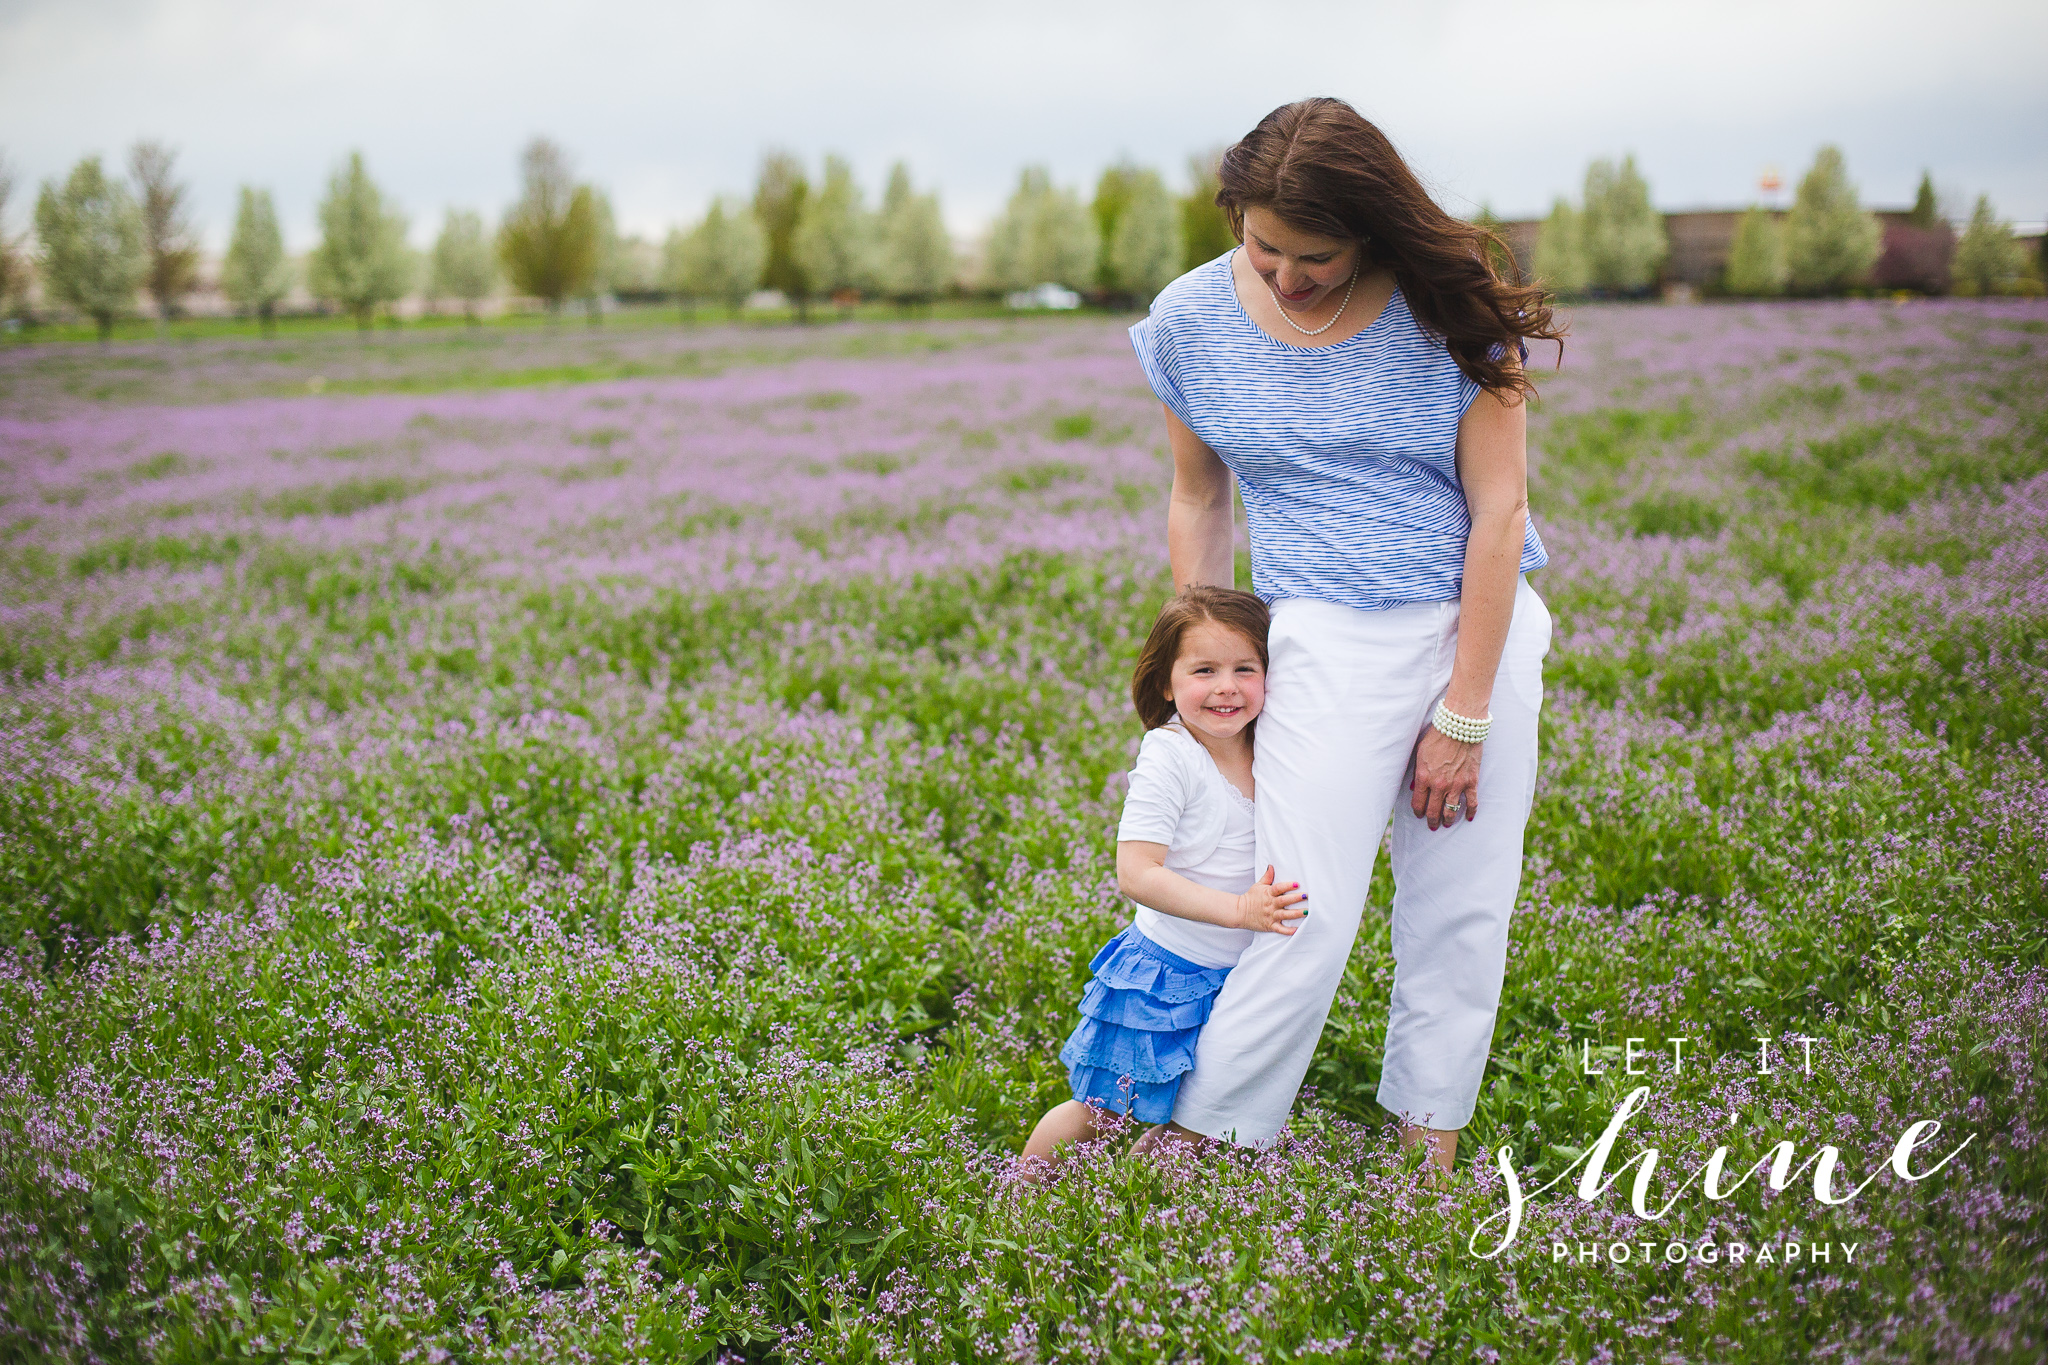 Mommy and Me Boise Lifestyle Photography-5367.jpg